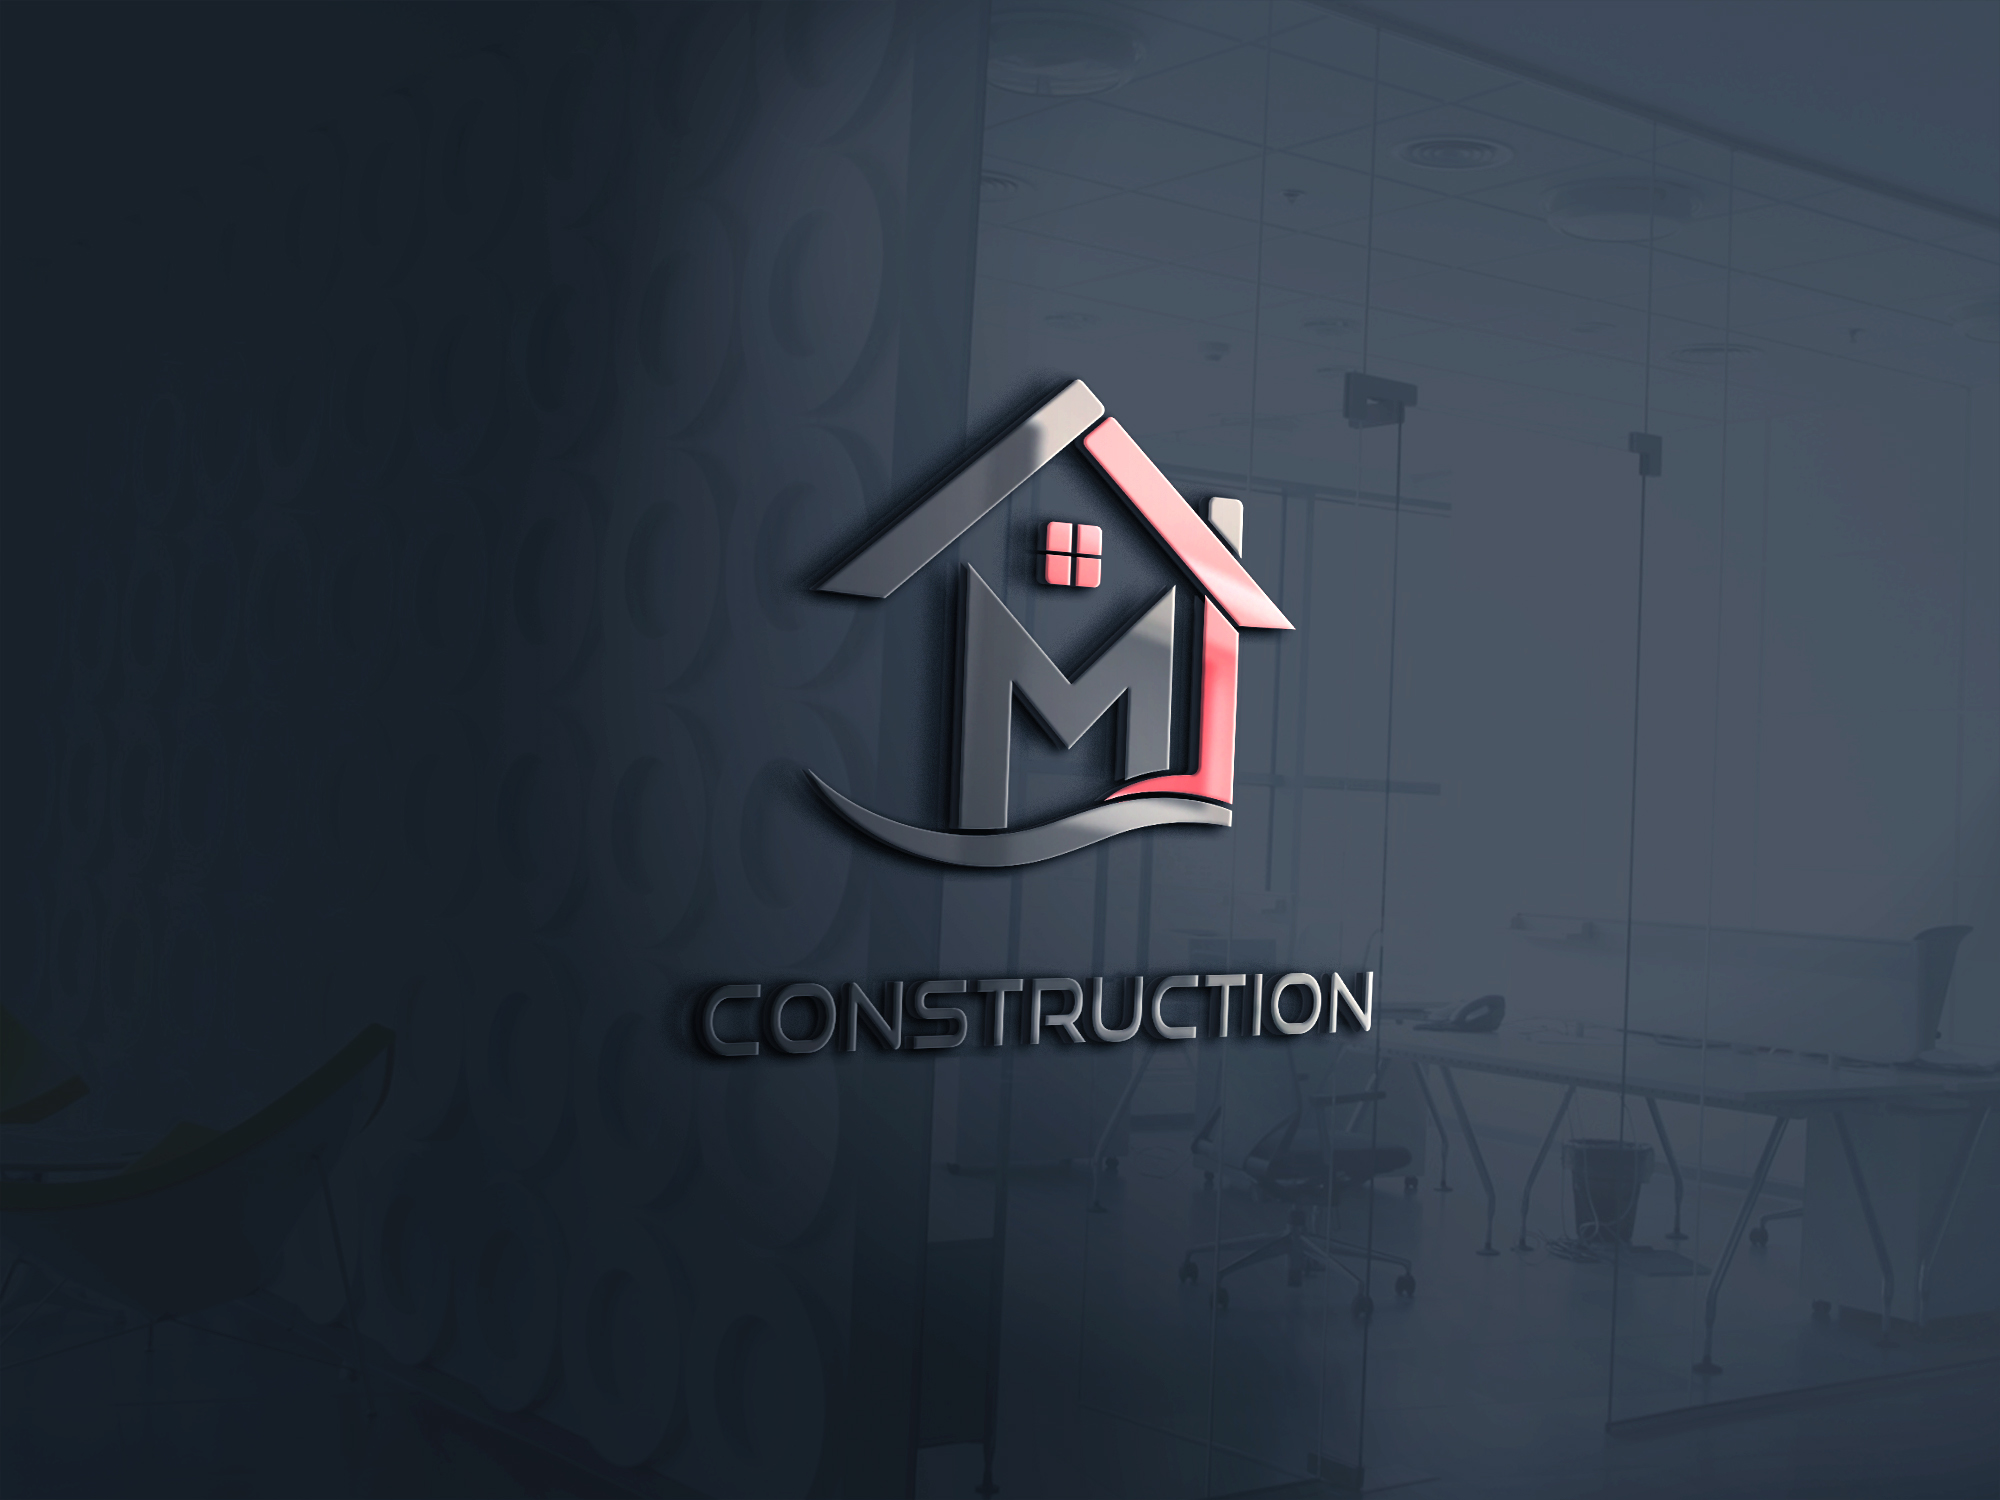 I will design a clean, minimal and professional logo